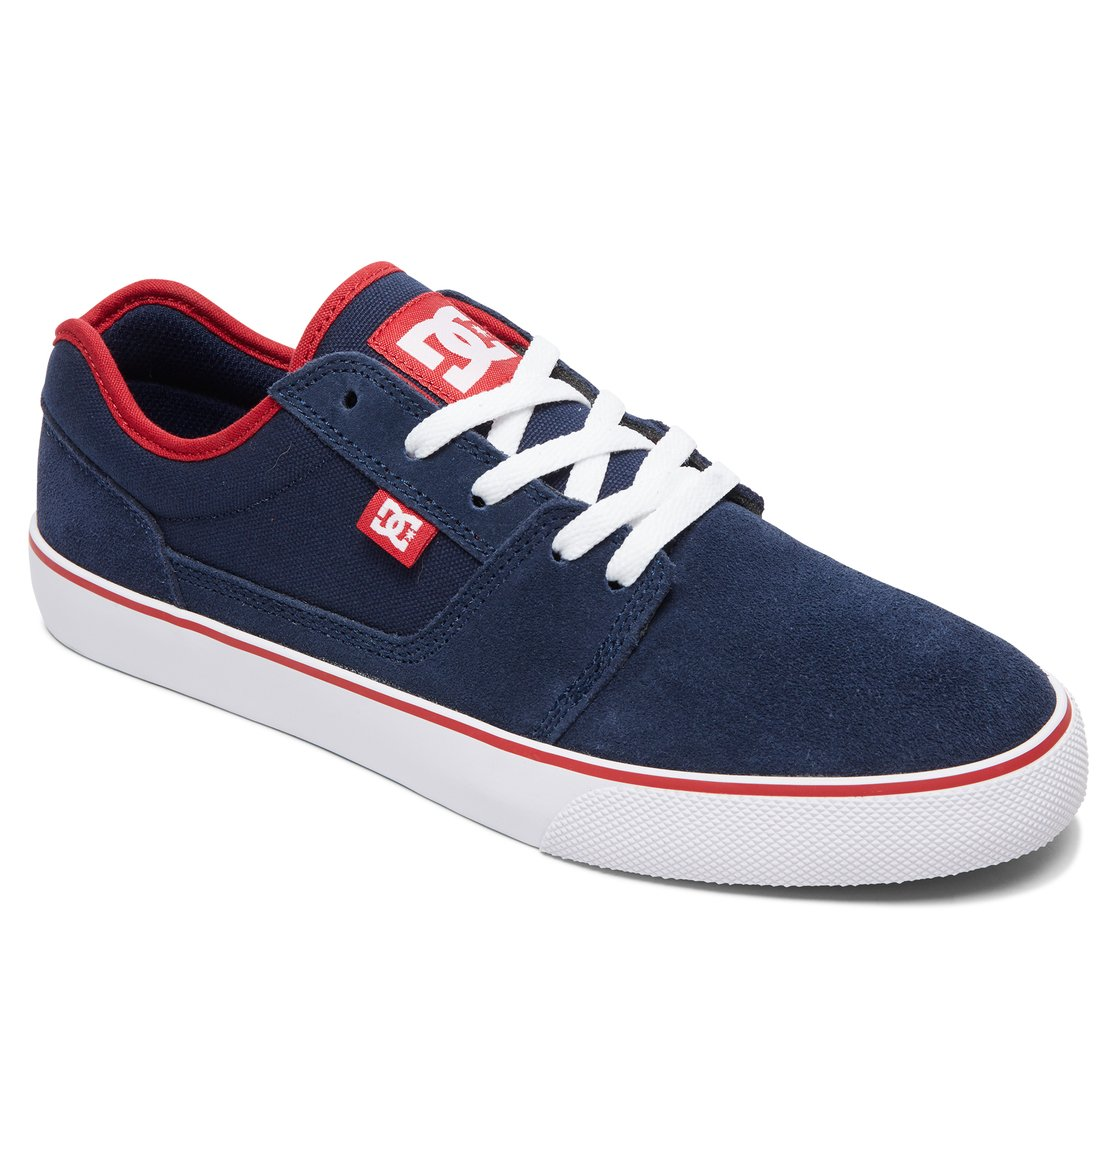 DC-Shoes-Tonik-Baskets-pour-Homme-302905 miniature 12